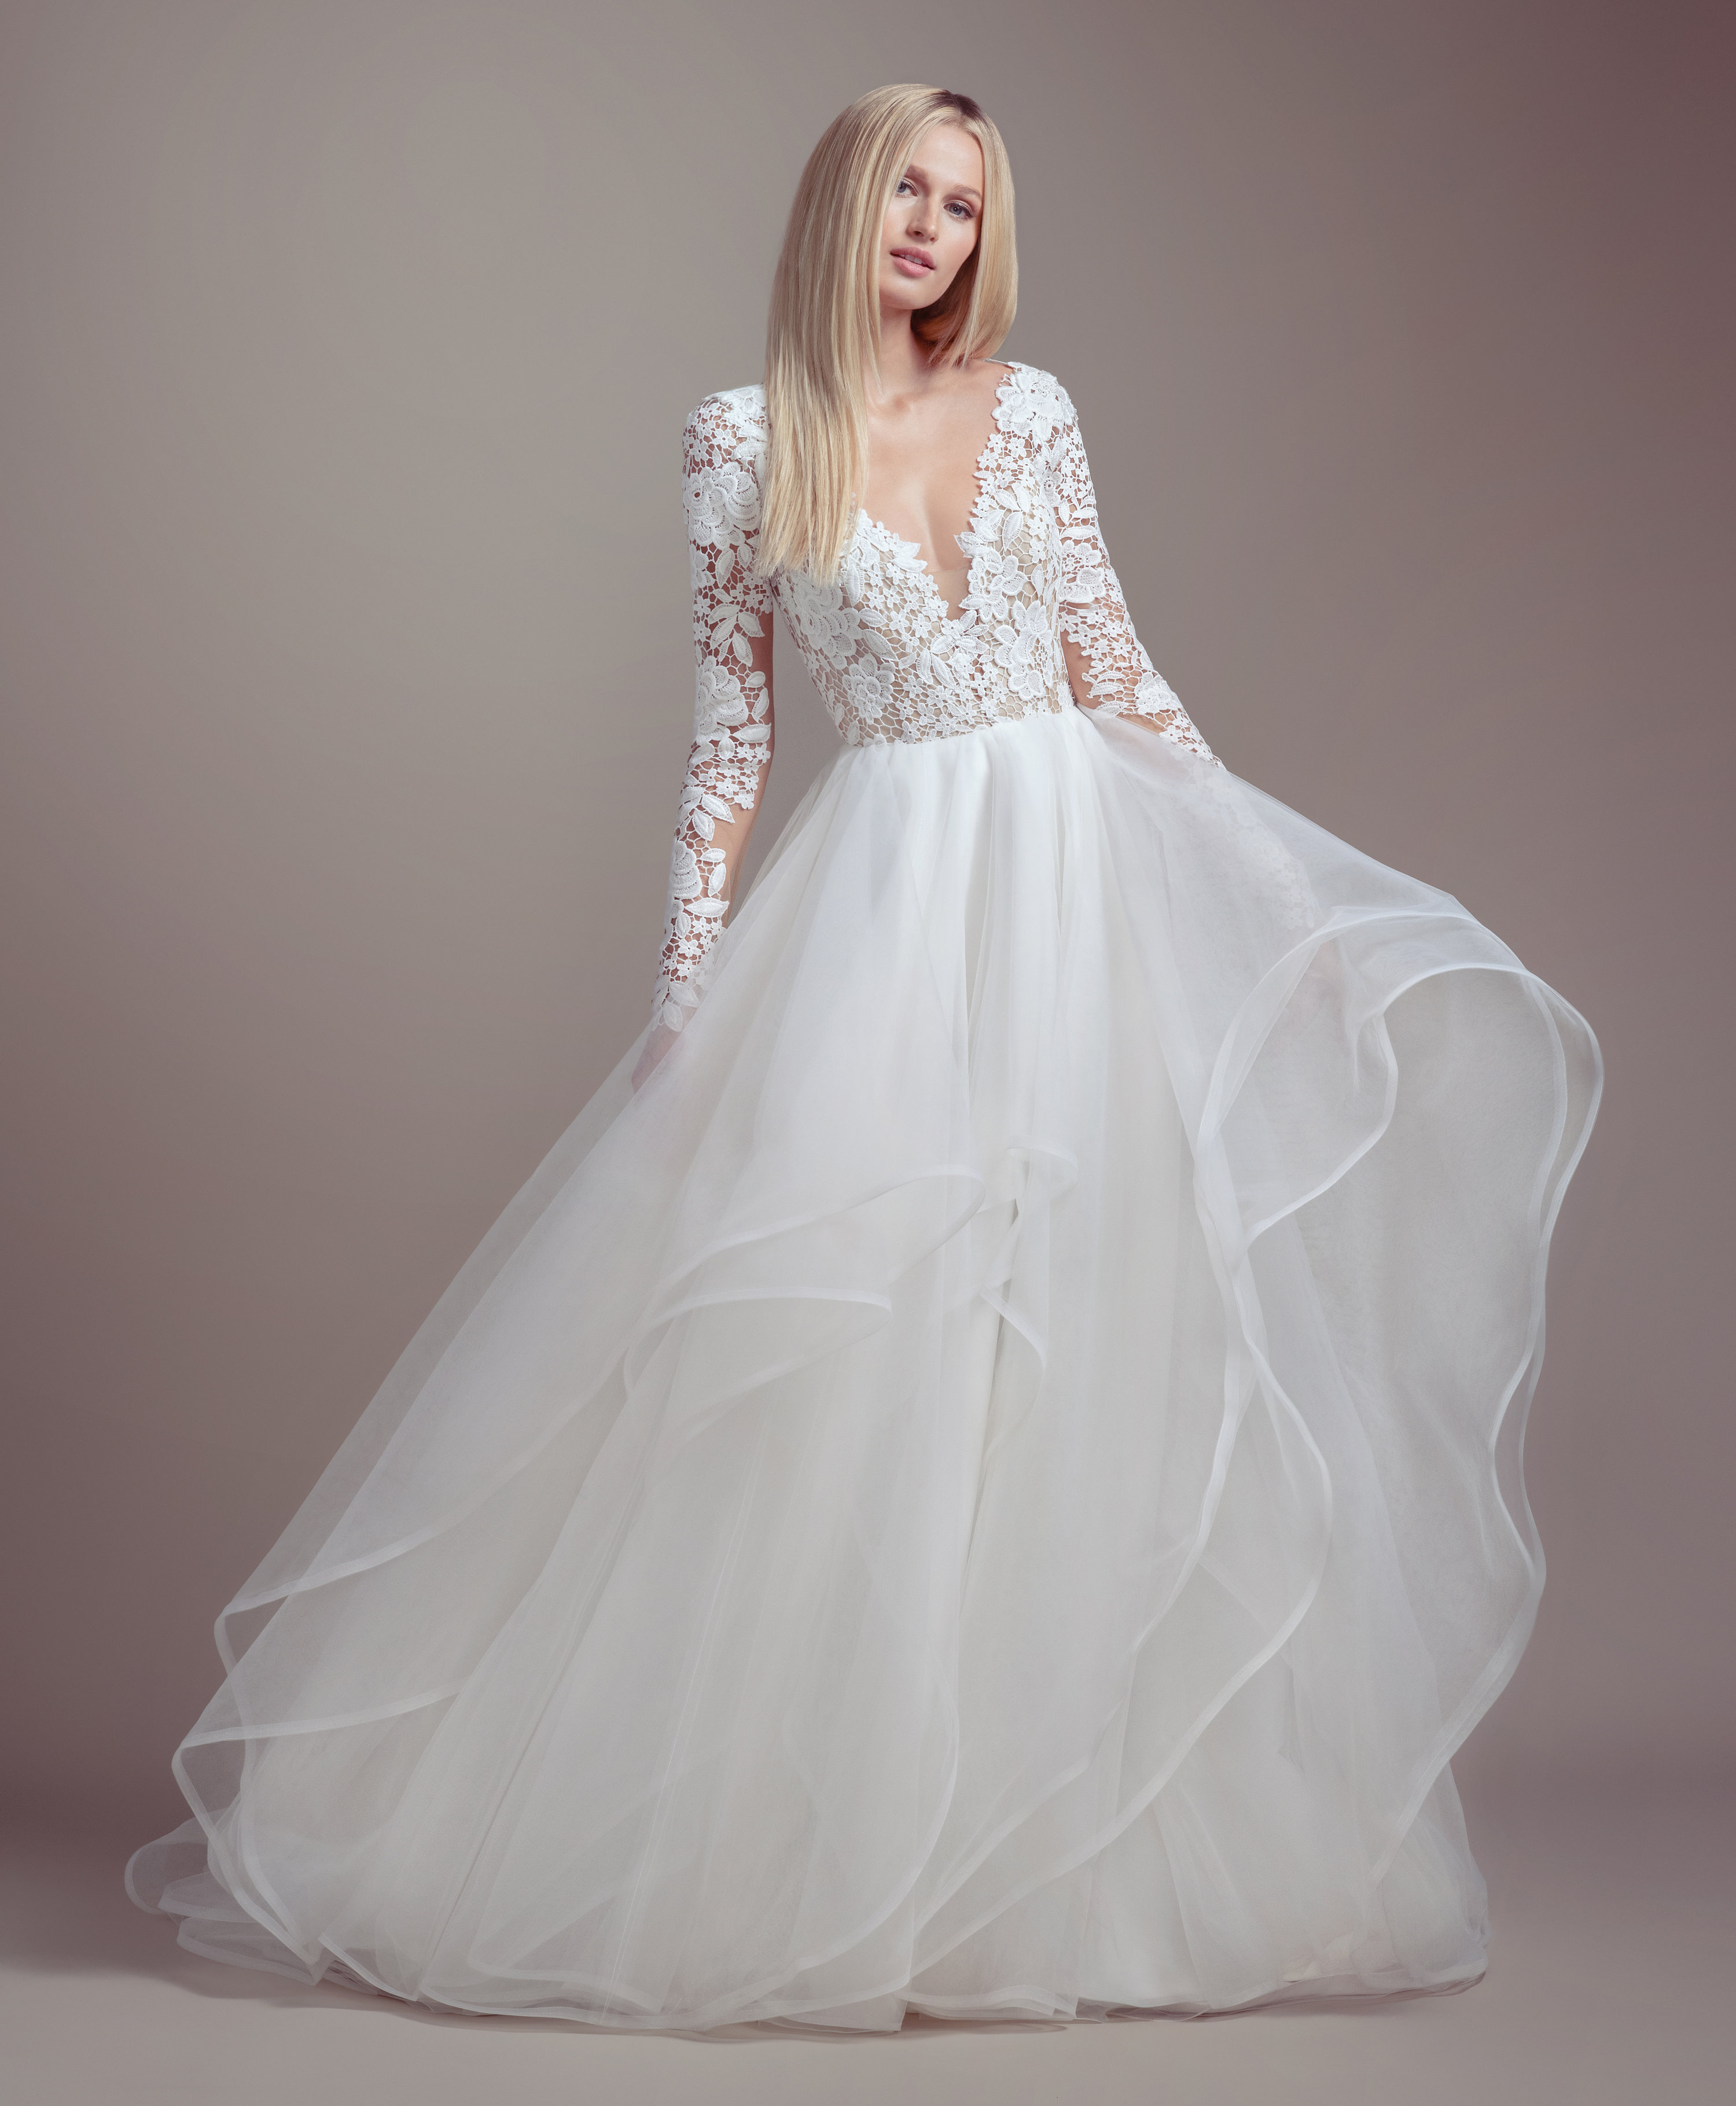 Lace Bodice Long Sleeve Ball Gown Wedding Dress